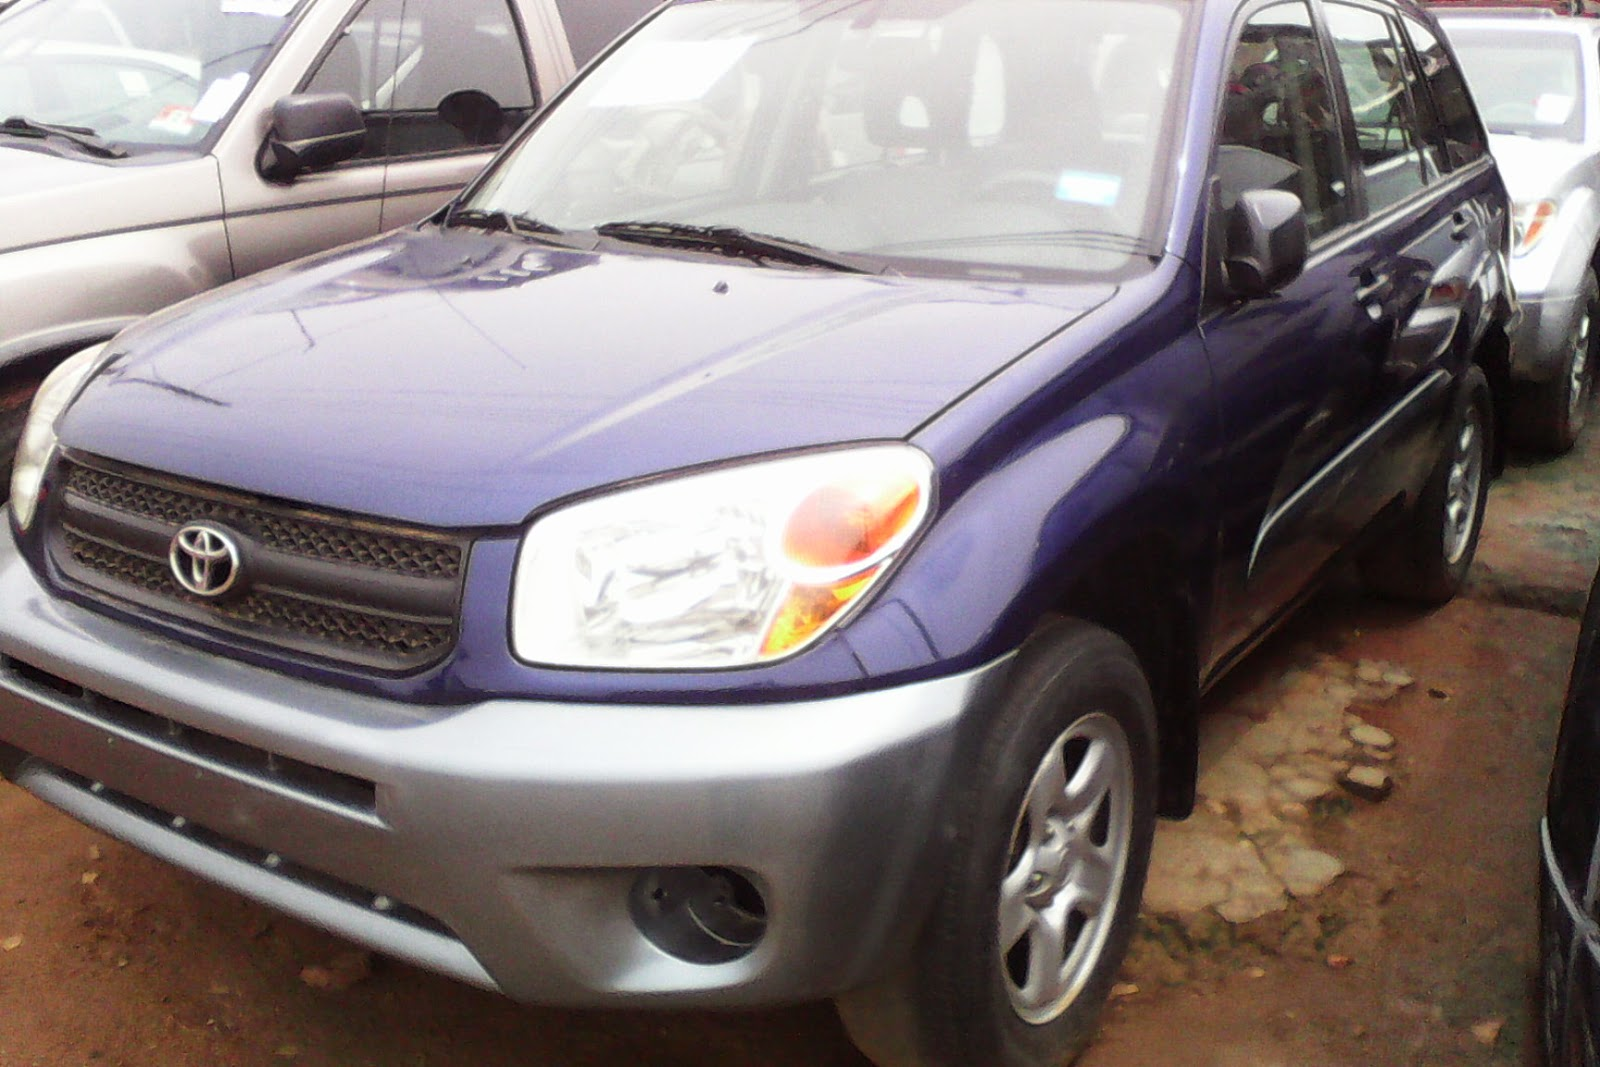 Auto Gele For Sale In Nigeria: BUY MODERN CHEAP FAIRLY USED CARS IN NIGERIA